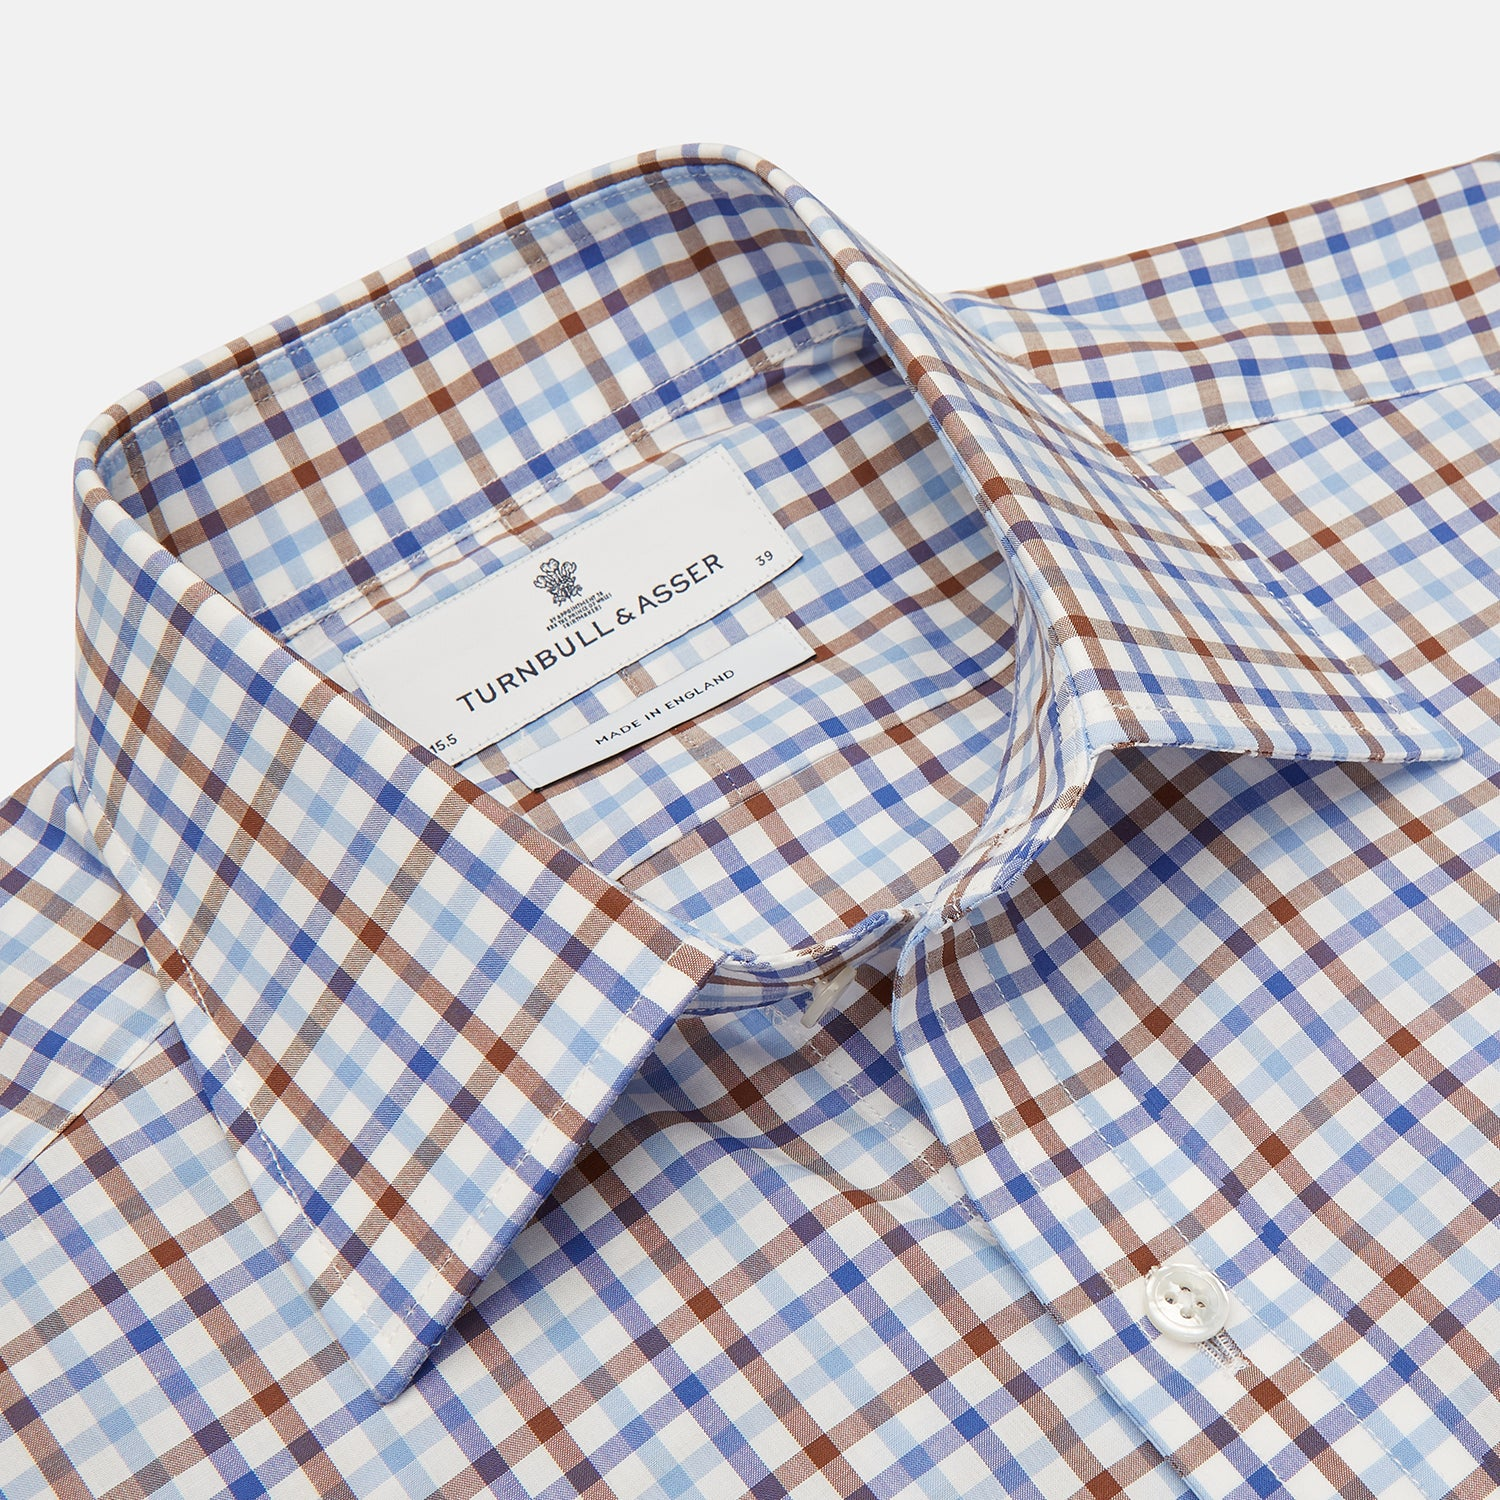 Blue, Brown and Navy Check Shirt with T&A Collar and 3-Button Cuffs